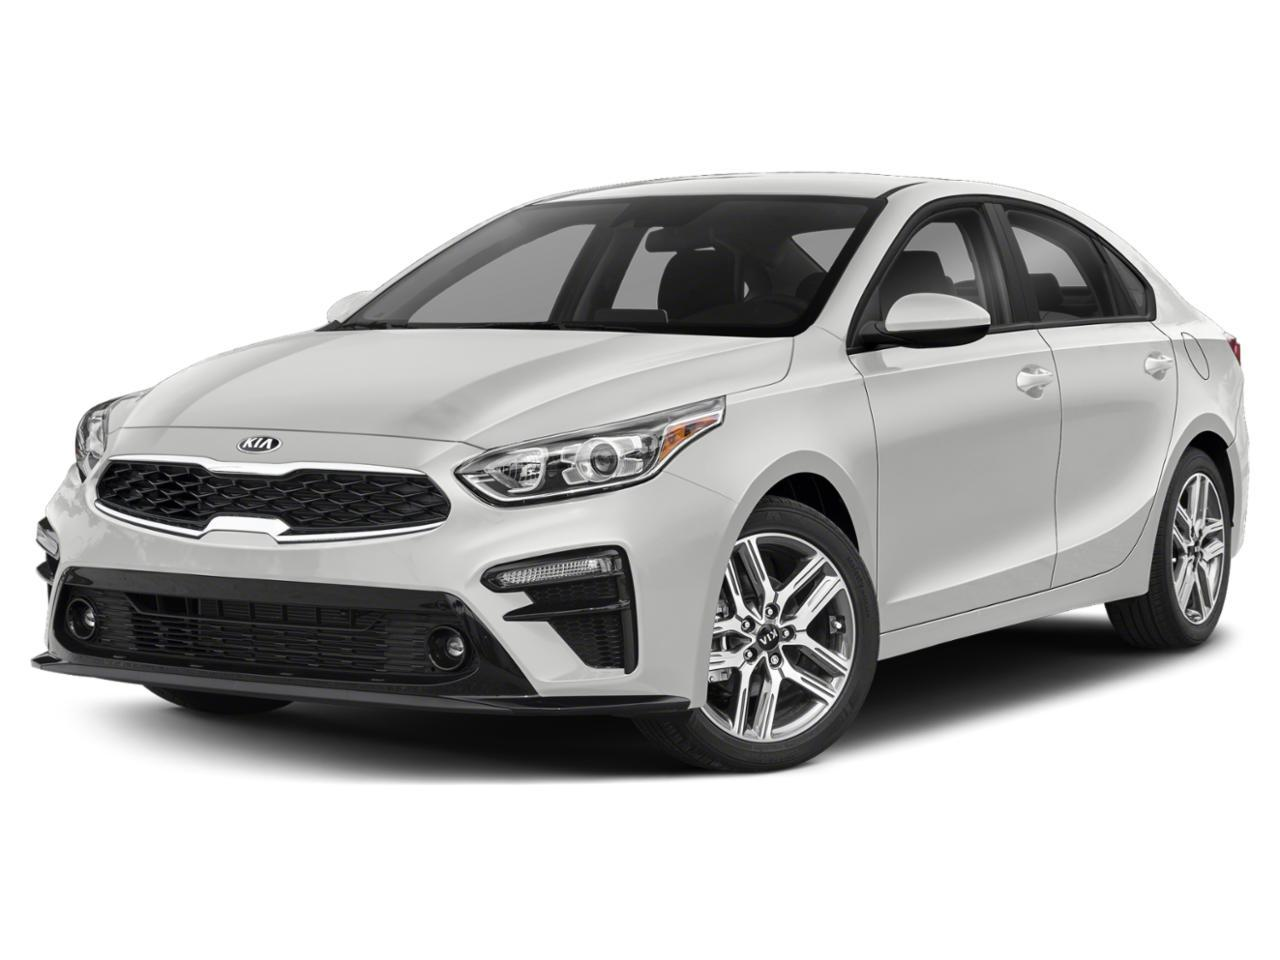 2019 Kia Forte Vehicle Photo in Peoria, IL 61615